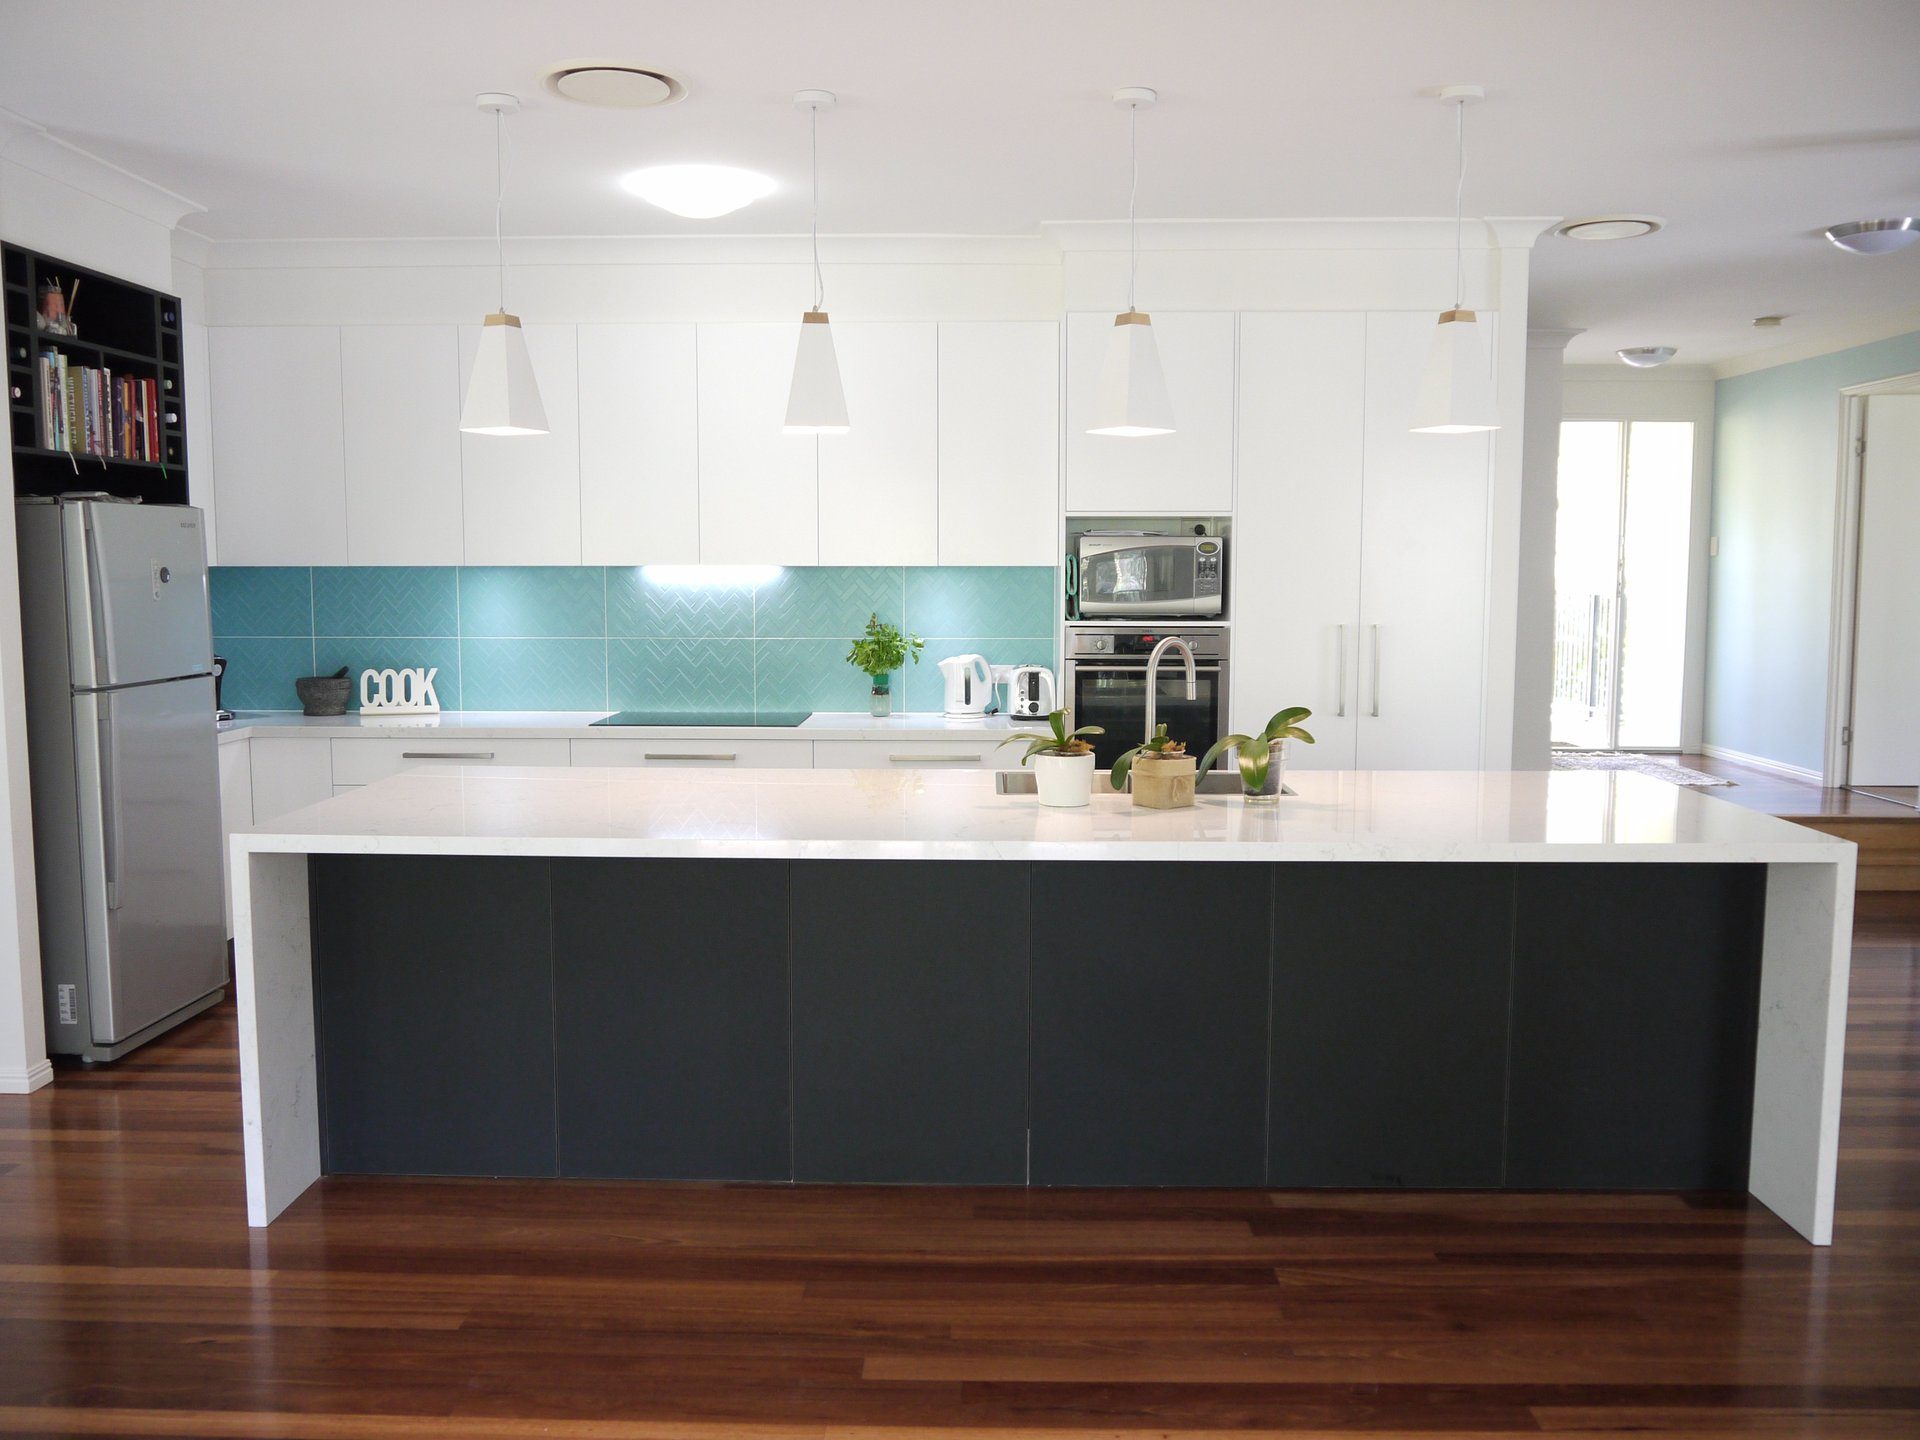 Kitchens Design Sunshine Coast